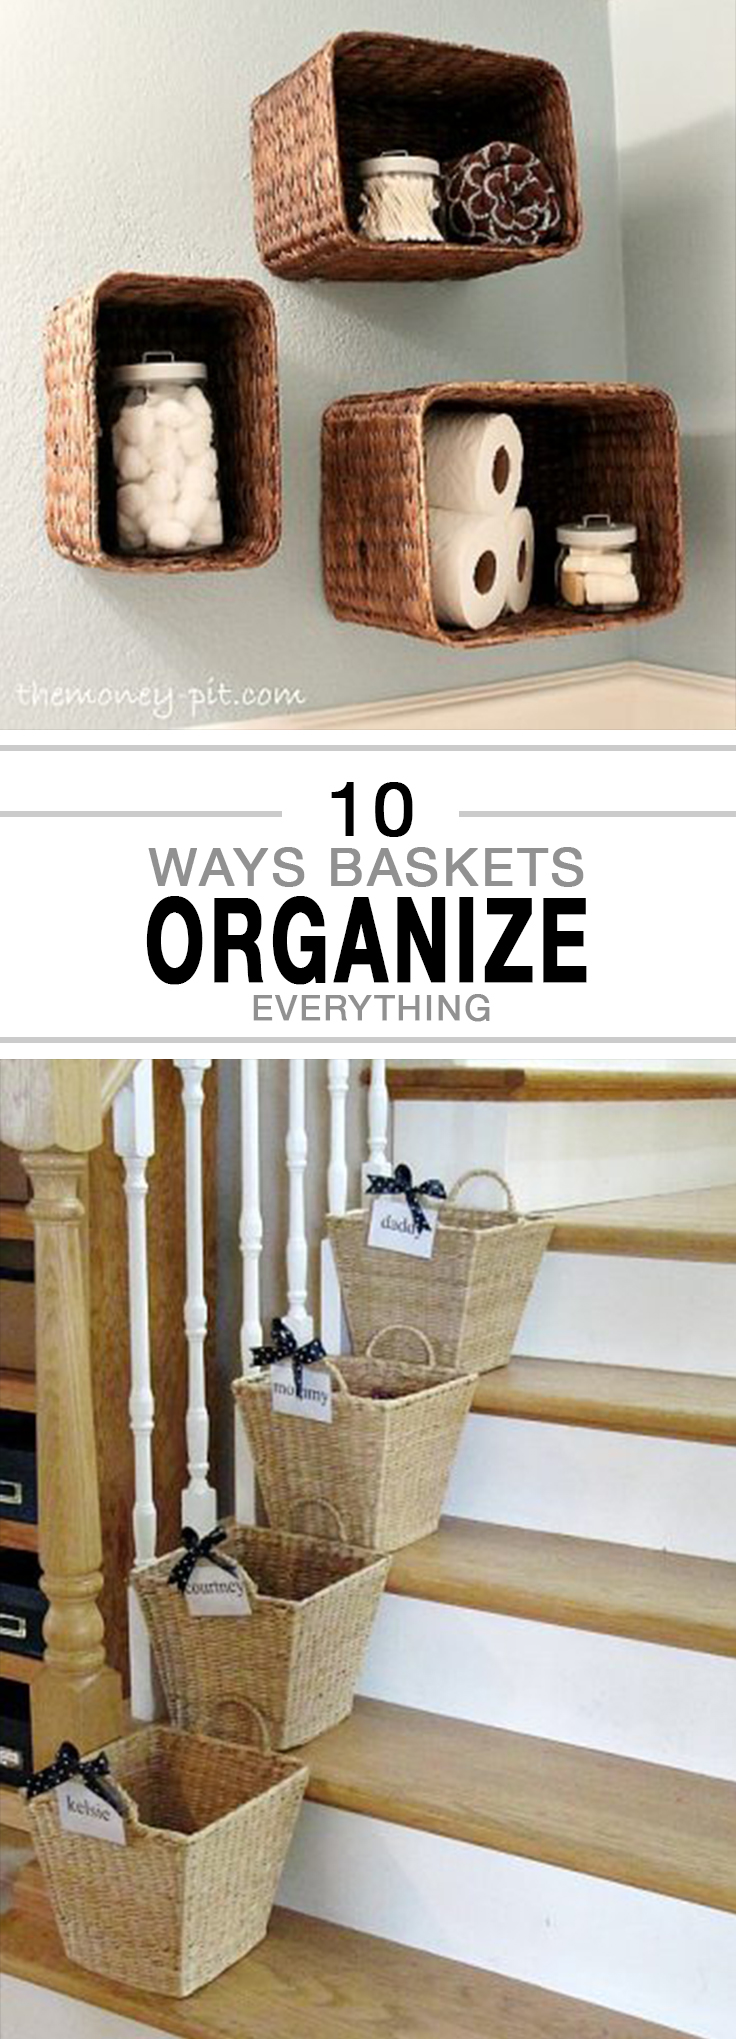 How to Organize Almost Anything With Baskets